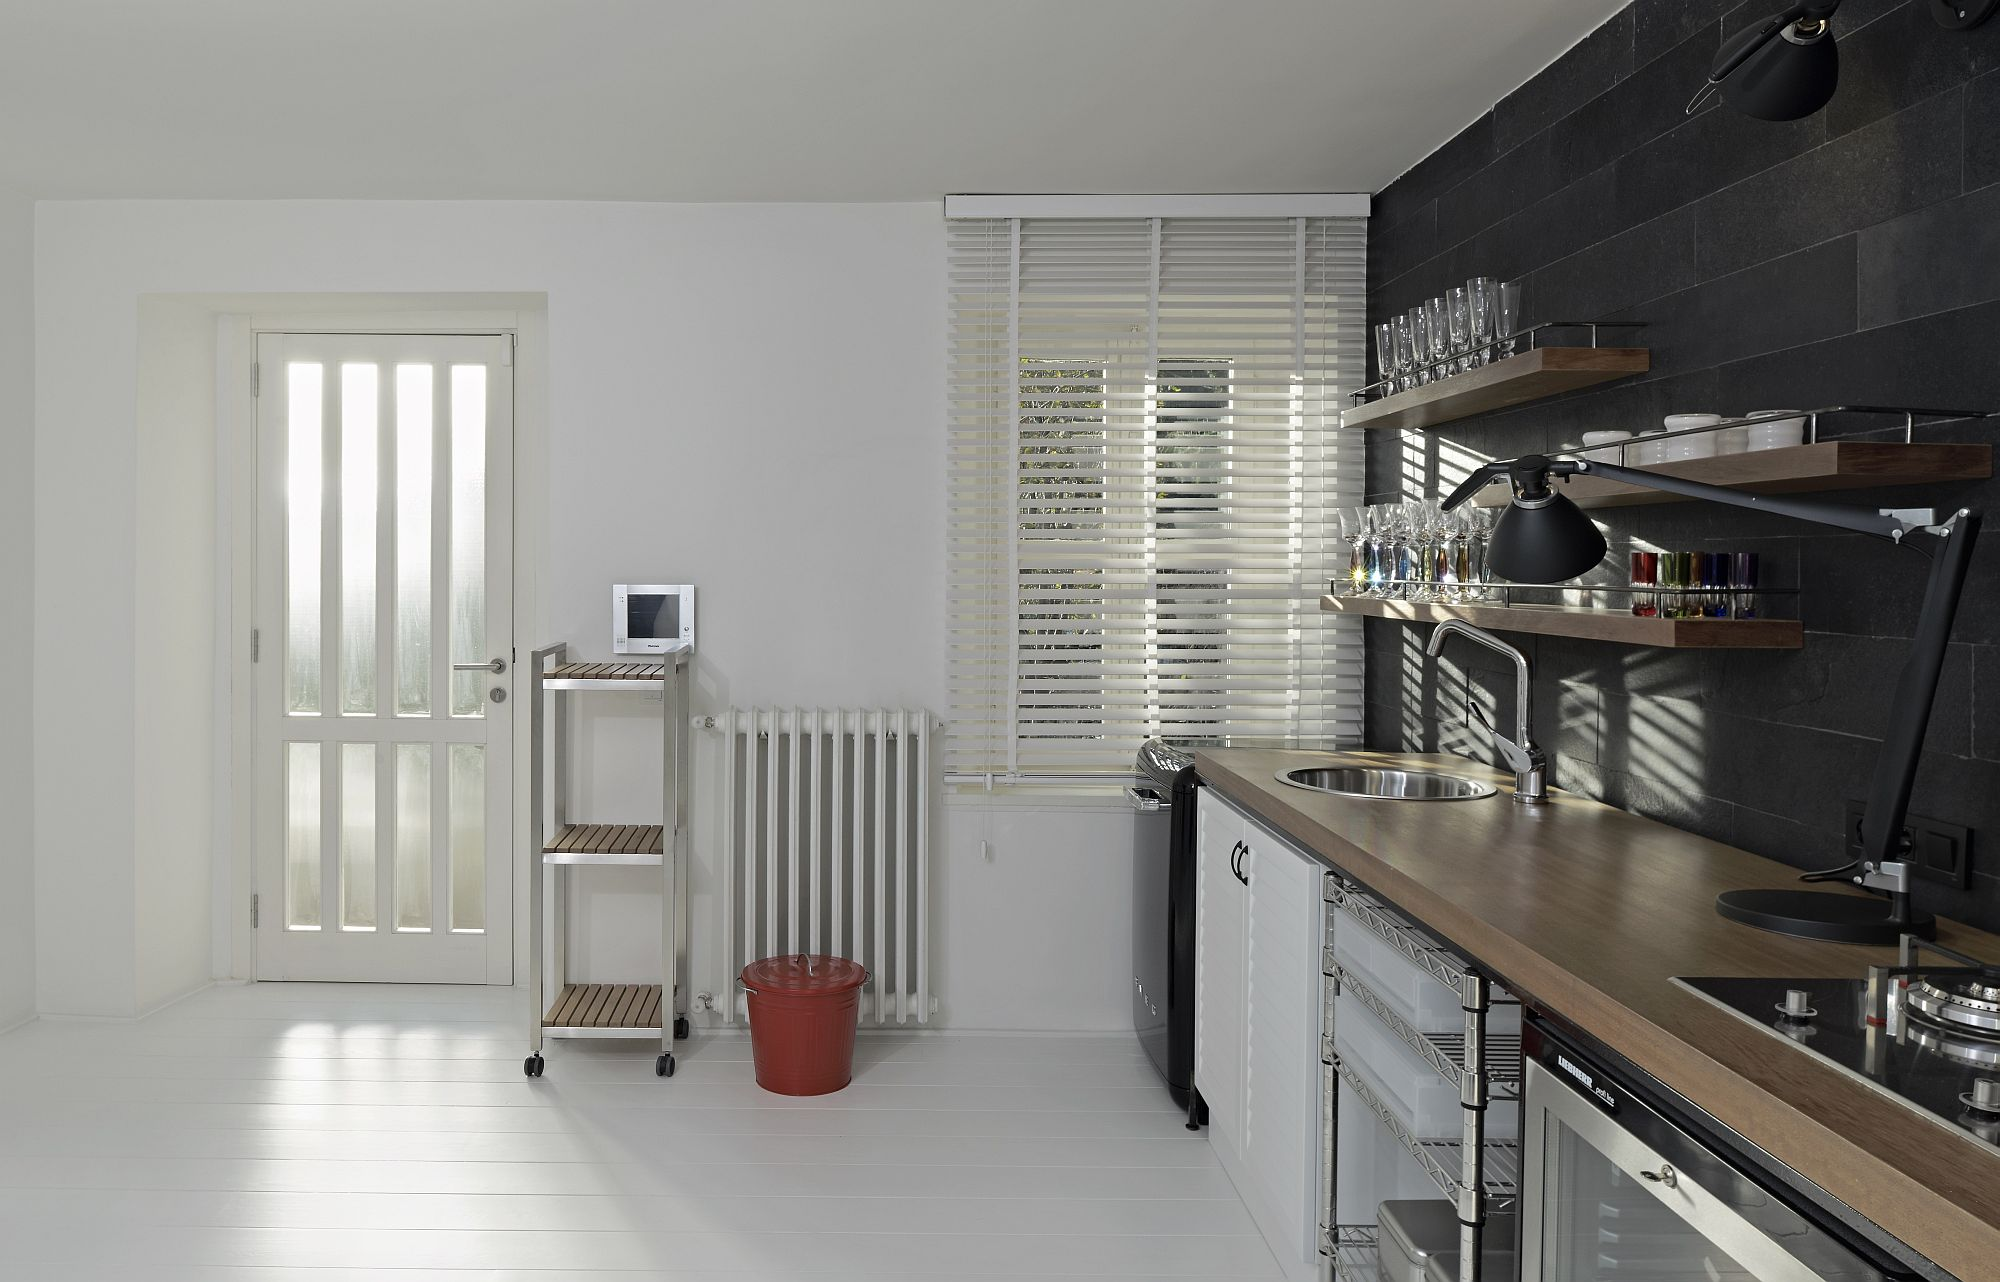 Space-savvy and minimal interior of the home in white